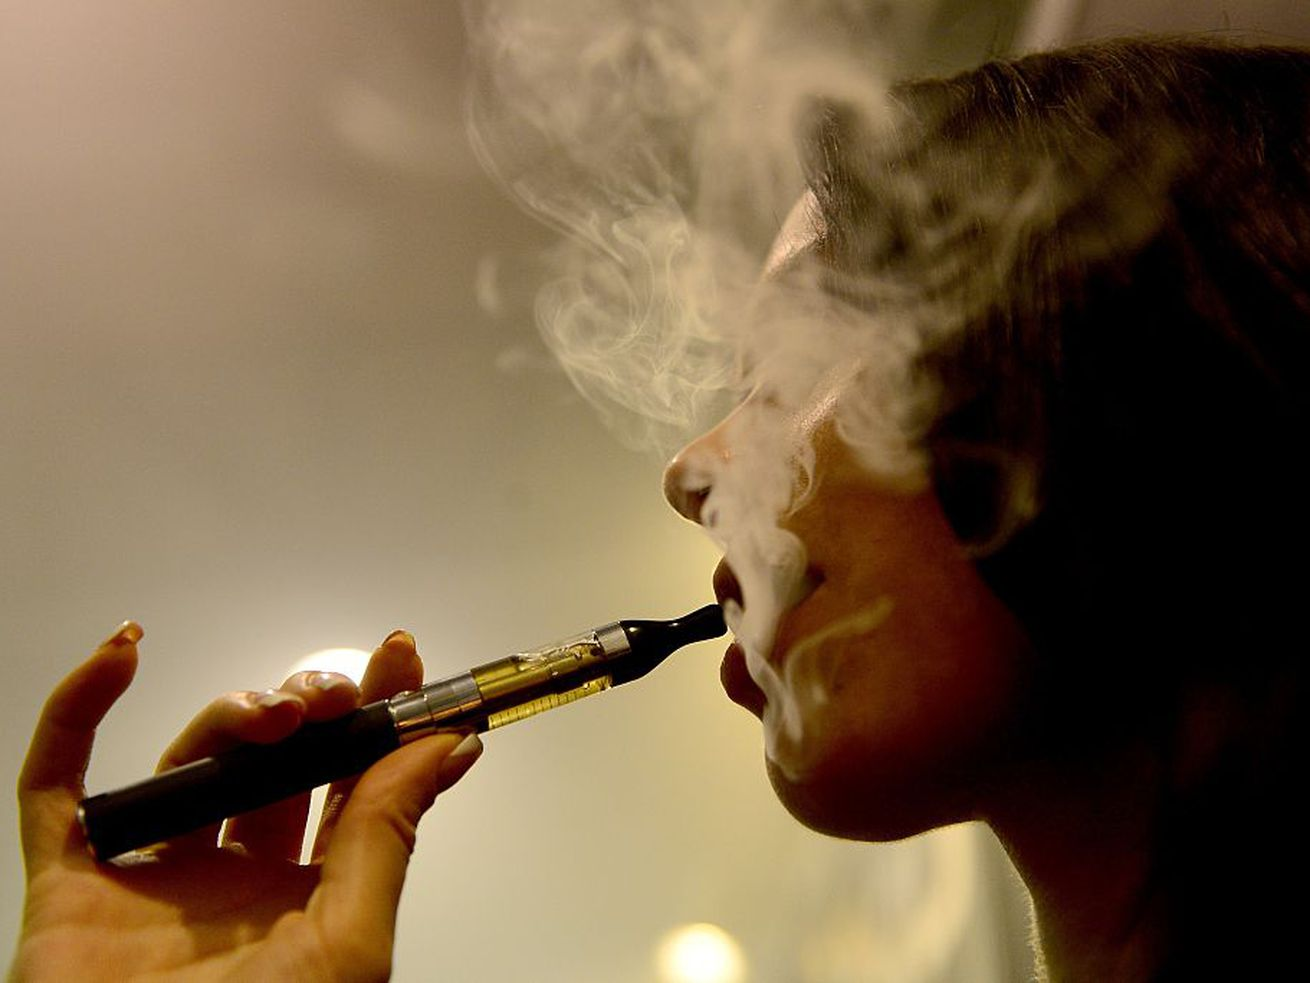 A woman vapes on an electronic cigarette.